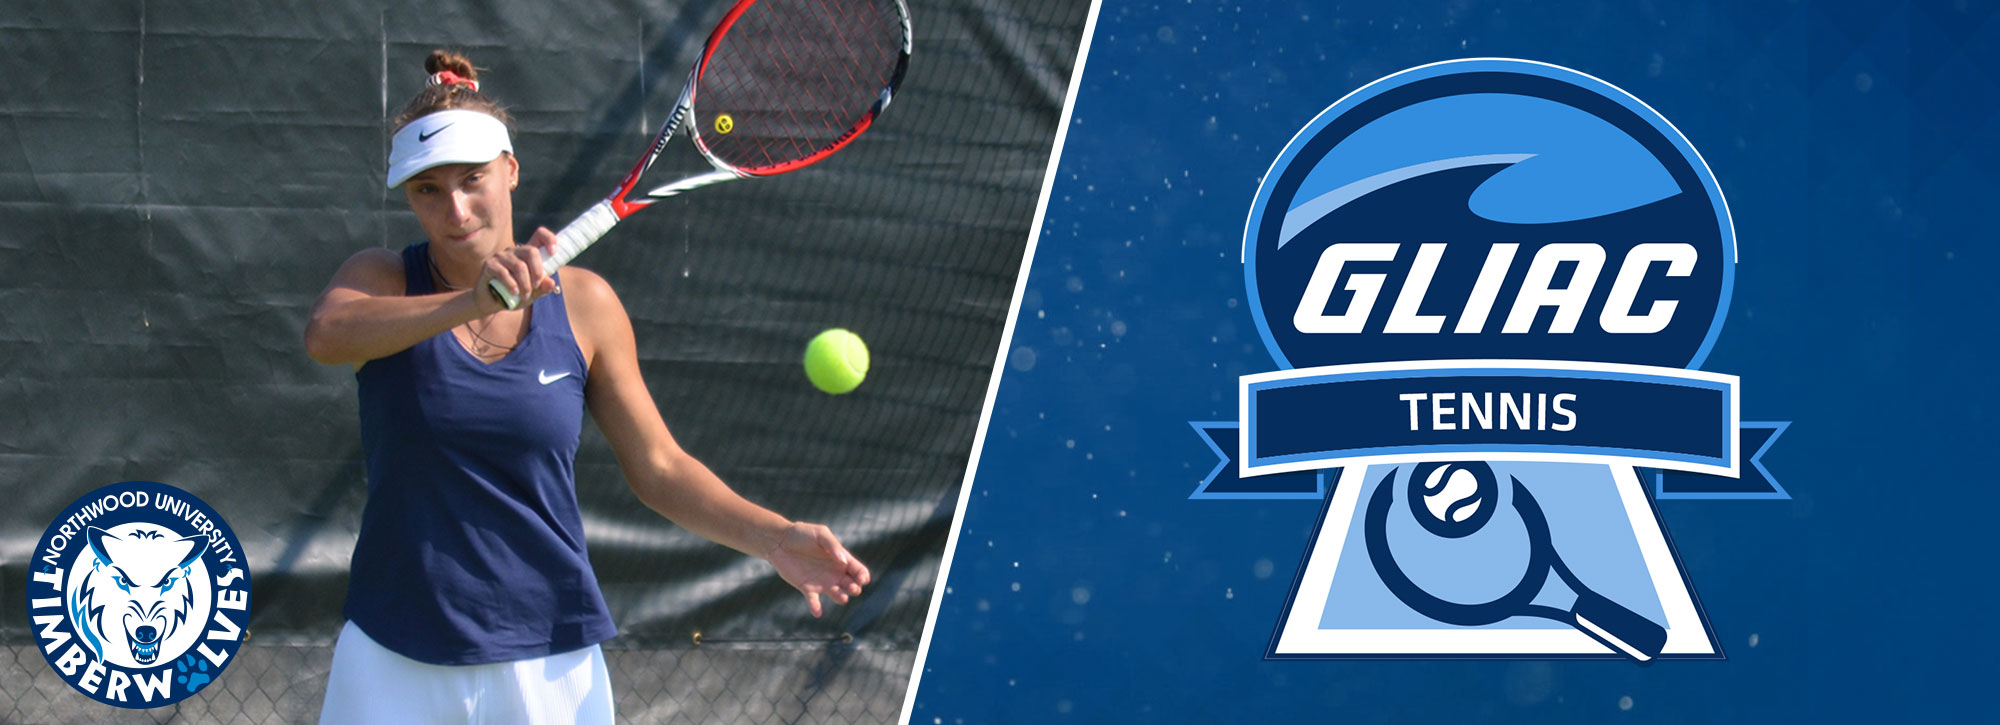 Northwood's Riabchuk Tabbed GLIAC Women's Tennis Athlete of the Week